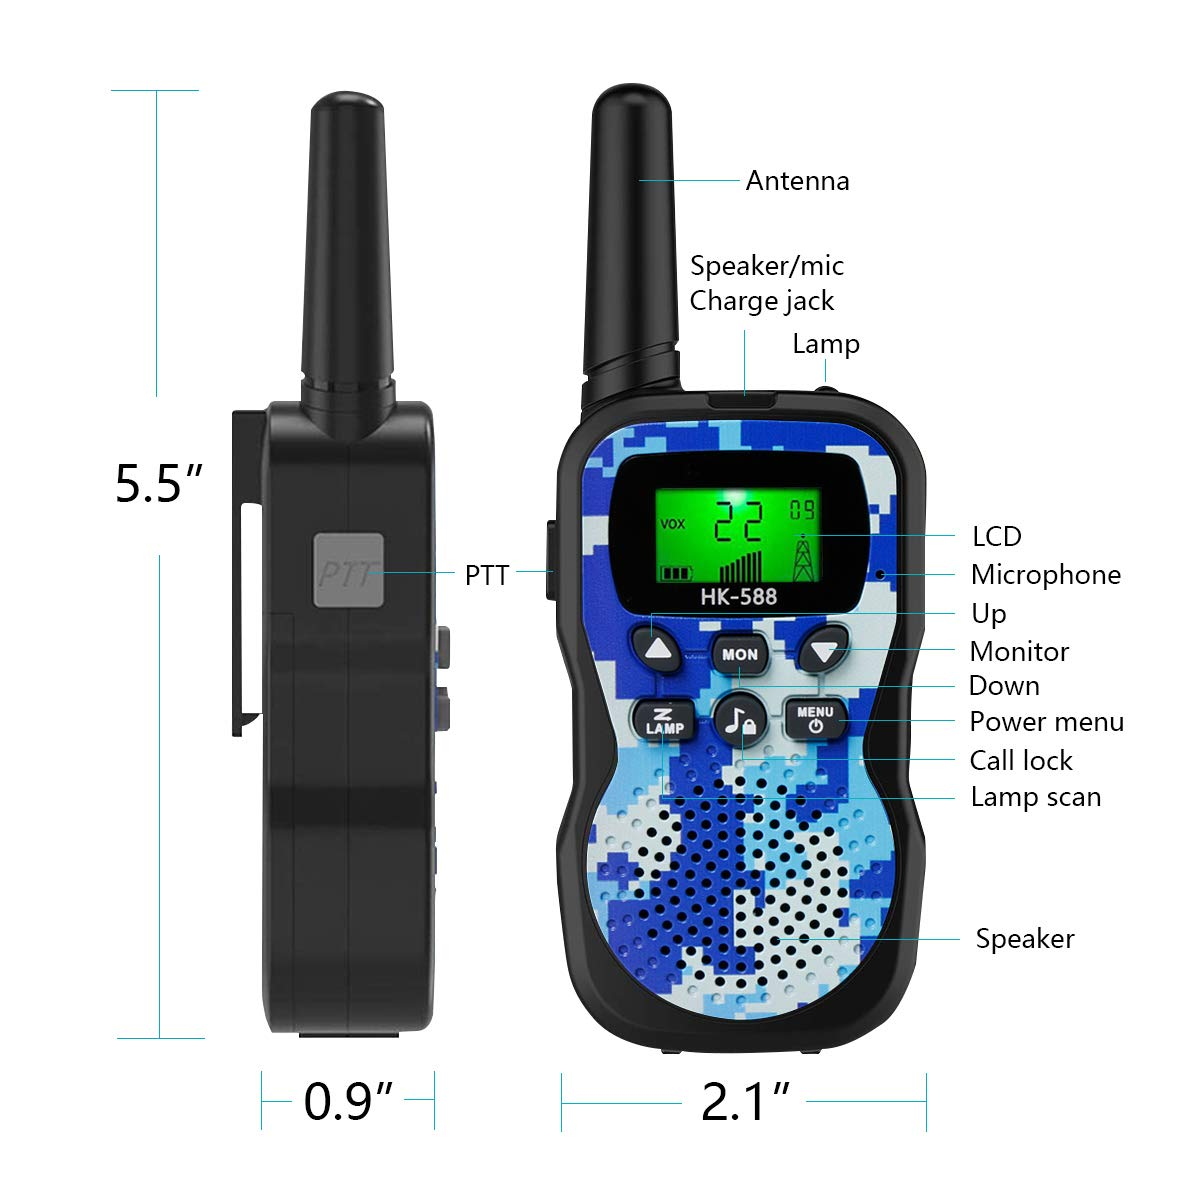 Walkie Talkies For Kids , Range Up to 3 Miles With Backlit LCD Display And Flashlight Walkie Talkies For Boys Girls Outdoor Toys For 3-12 Year Old Boys Girls Bset Gifts For 3-12 Year Old Boys Girls by Sun-Team (Image #2)